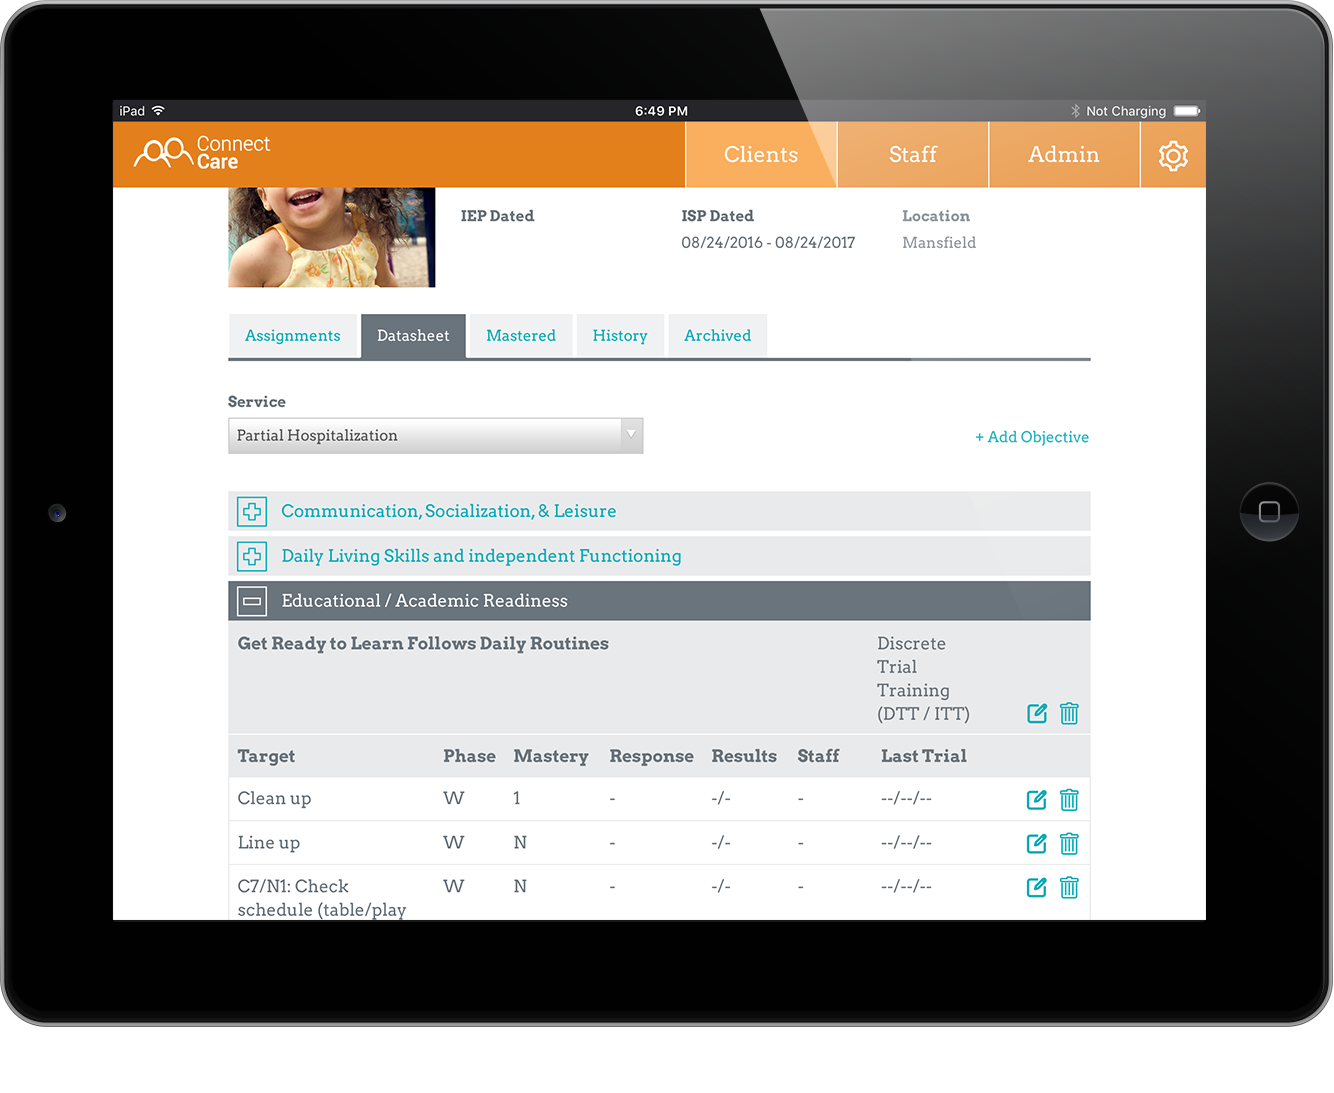 Manage Goals by Touch - As a first step, import ISPs and IEPs into ConnectCare to fully represent the client's curriculum of goals, objectives and tasks. Next, categorize how the services should be billed and assign staff members to begin tracking progress.